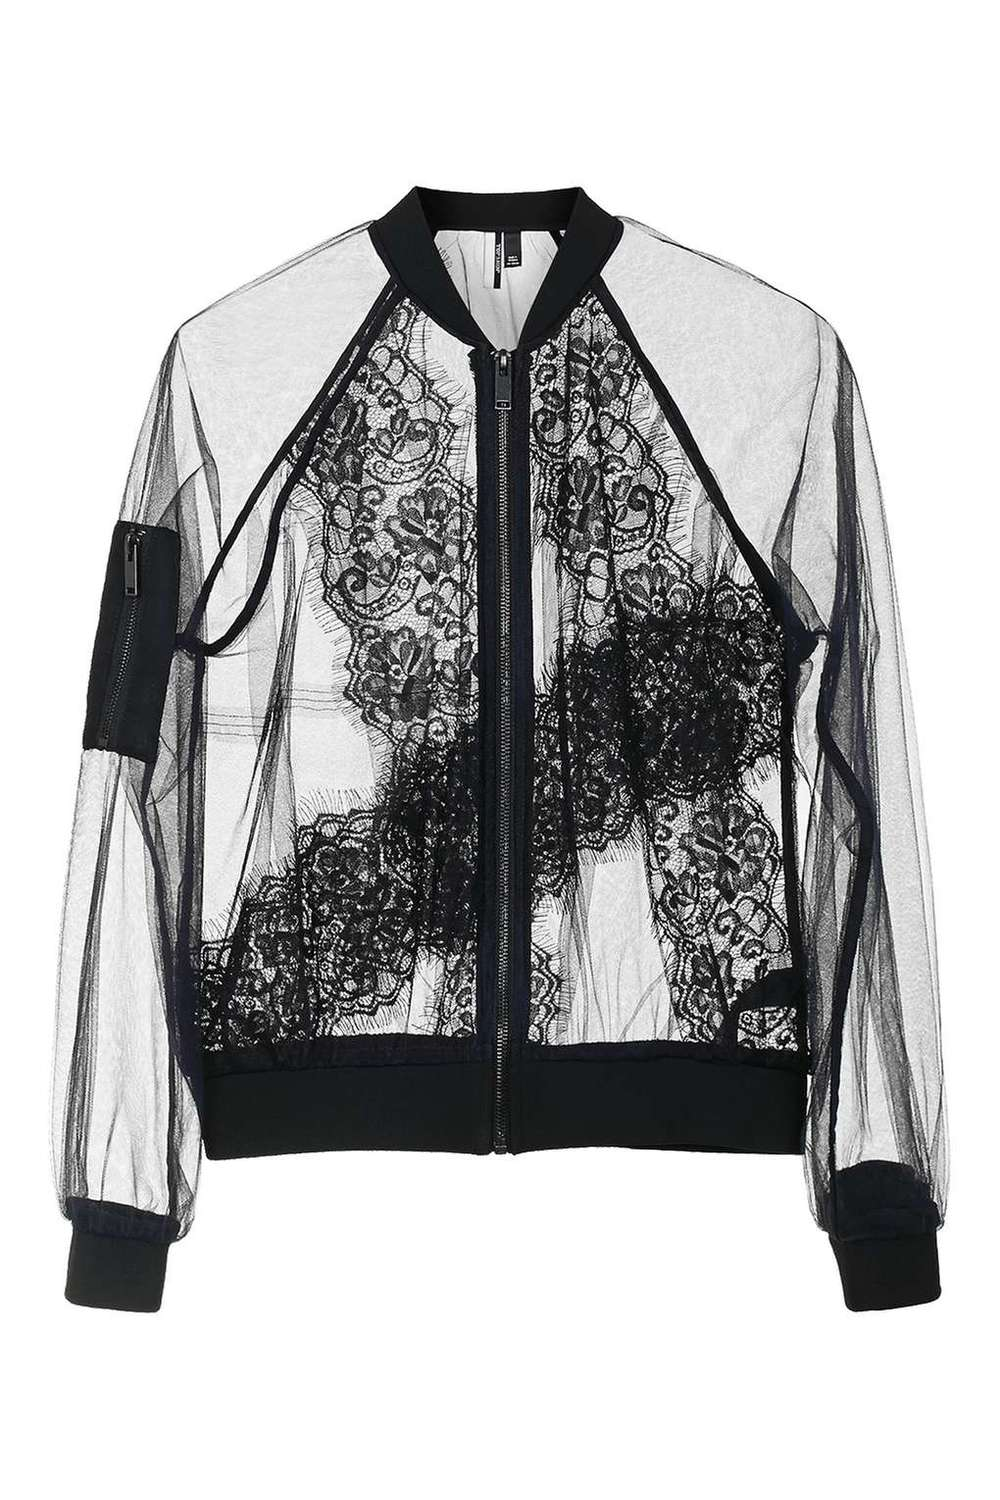 Top Shop Lace Bomber Jacket